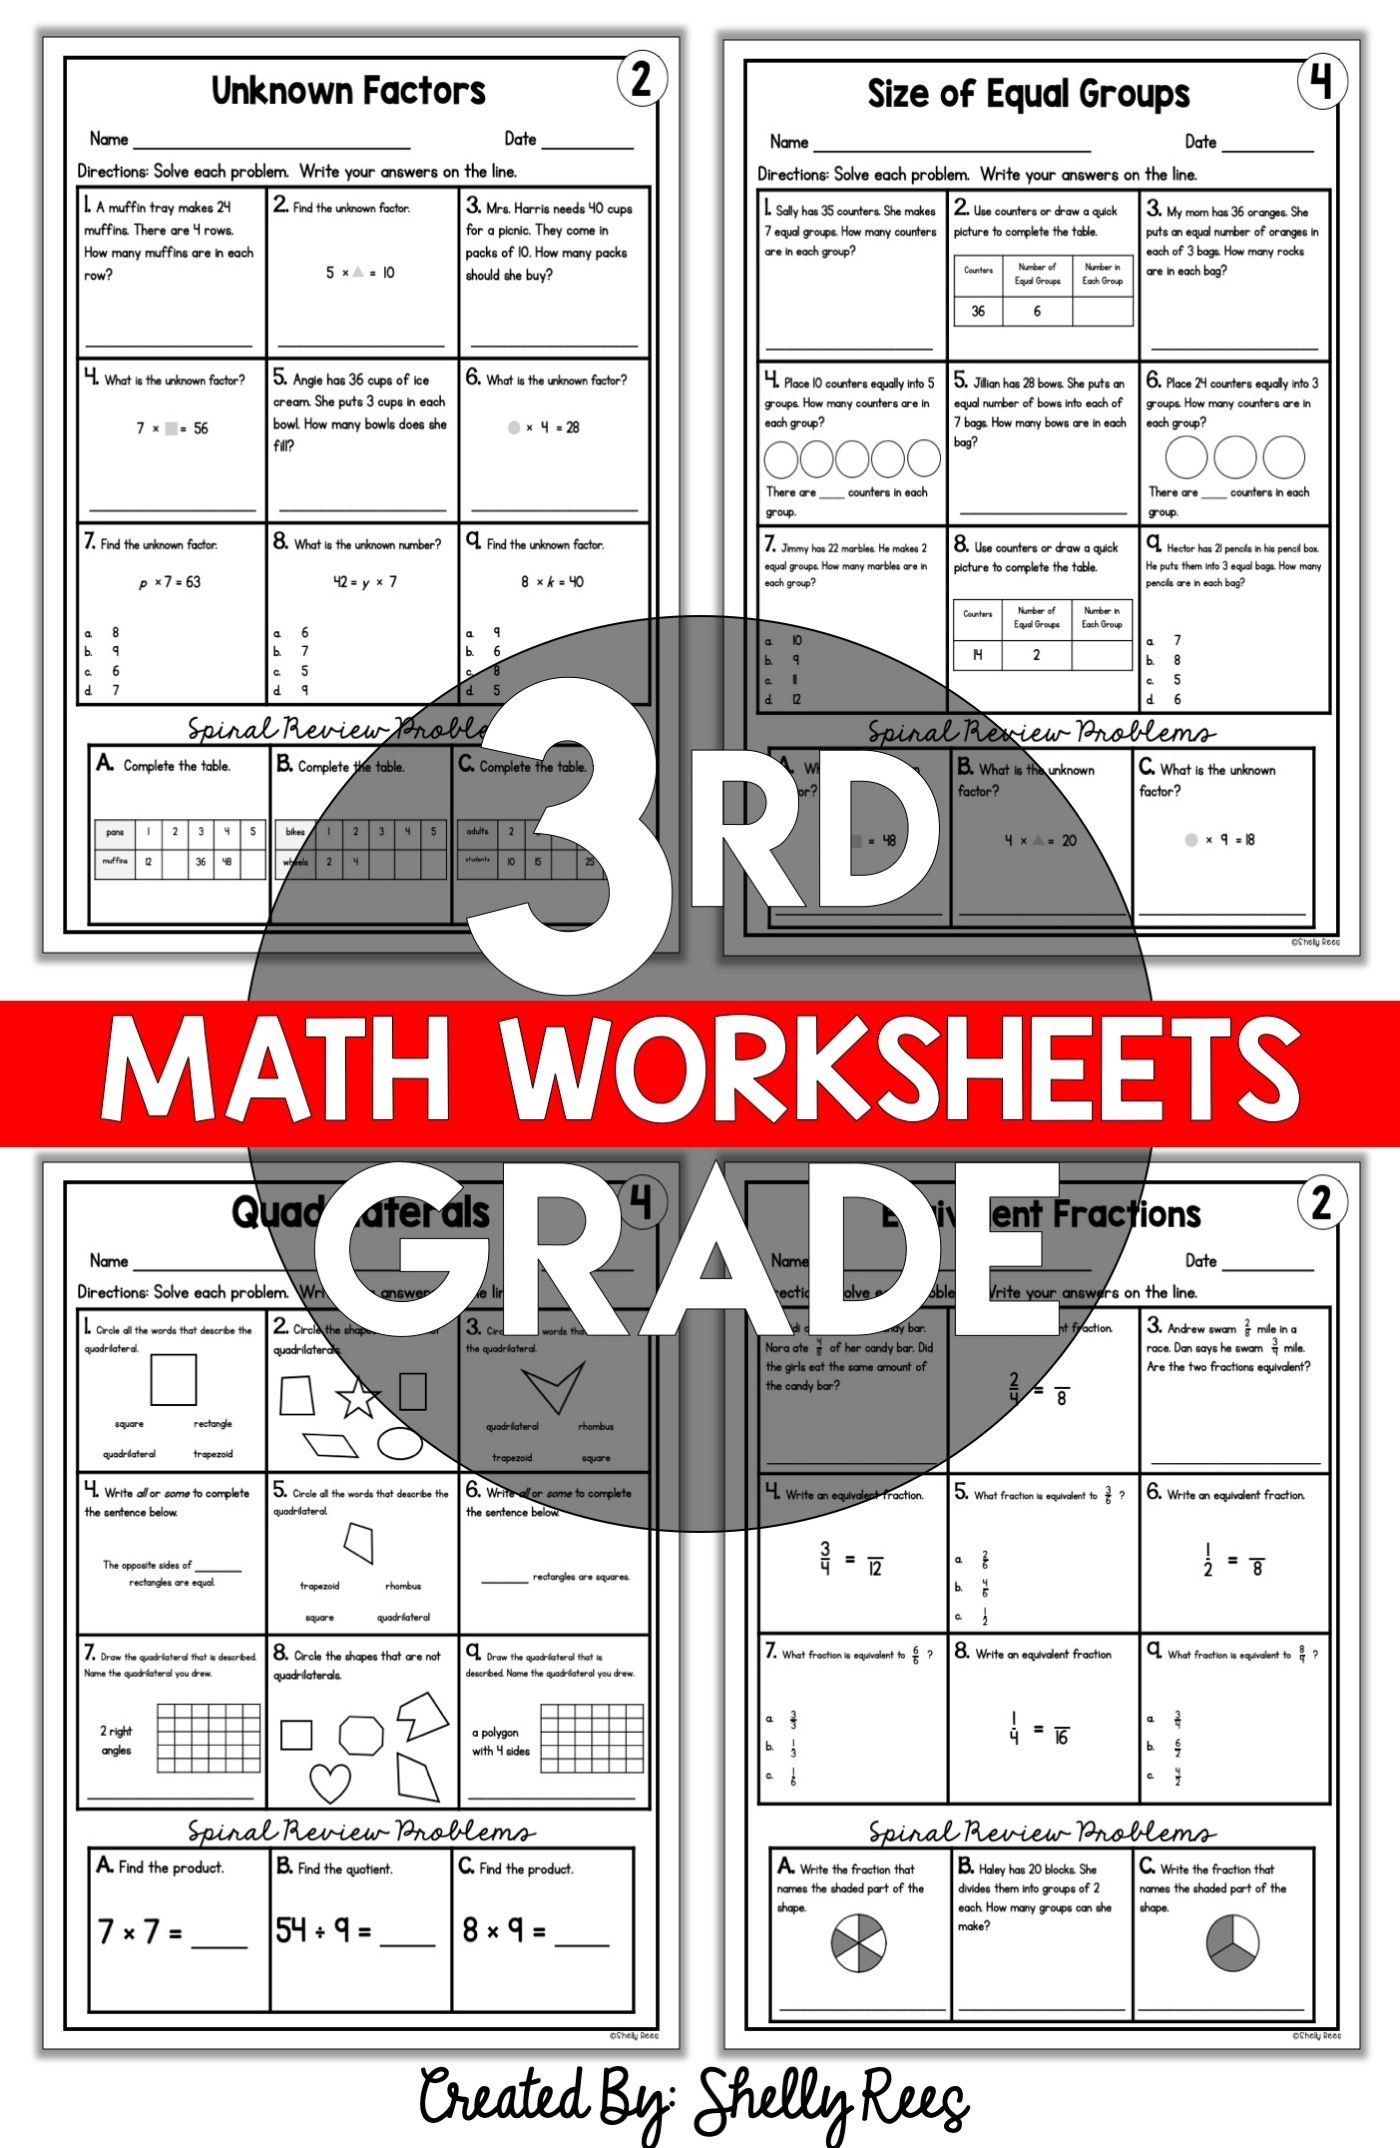 hight resolution of 3rd Grade Math Worksheets Free and Printable - Appletastic Learning   Math  worksheets